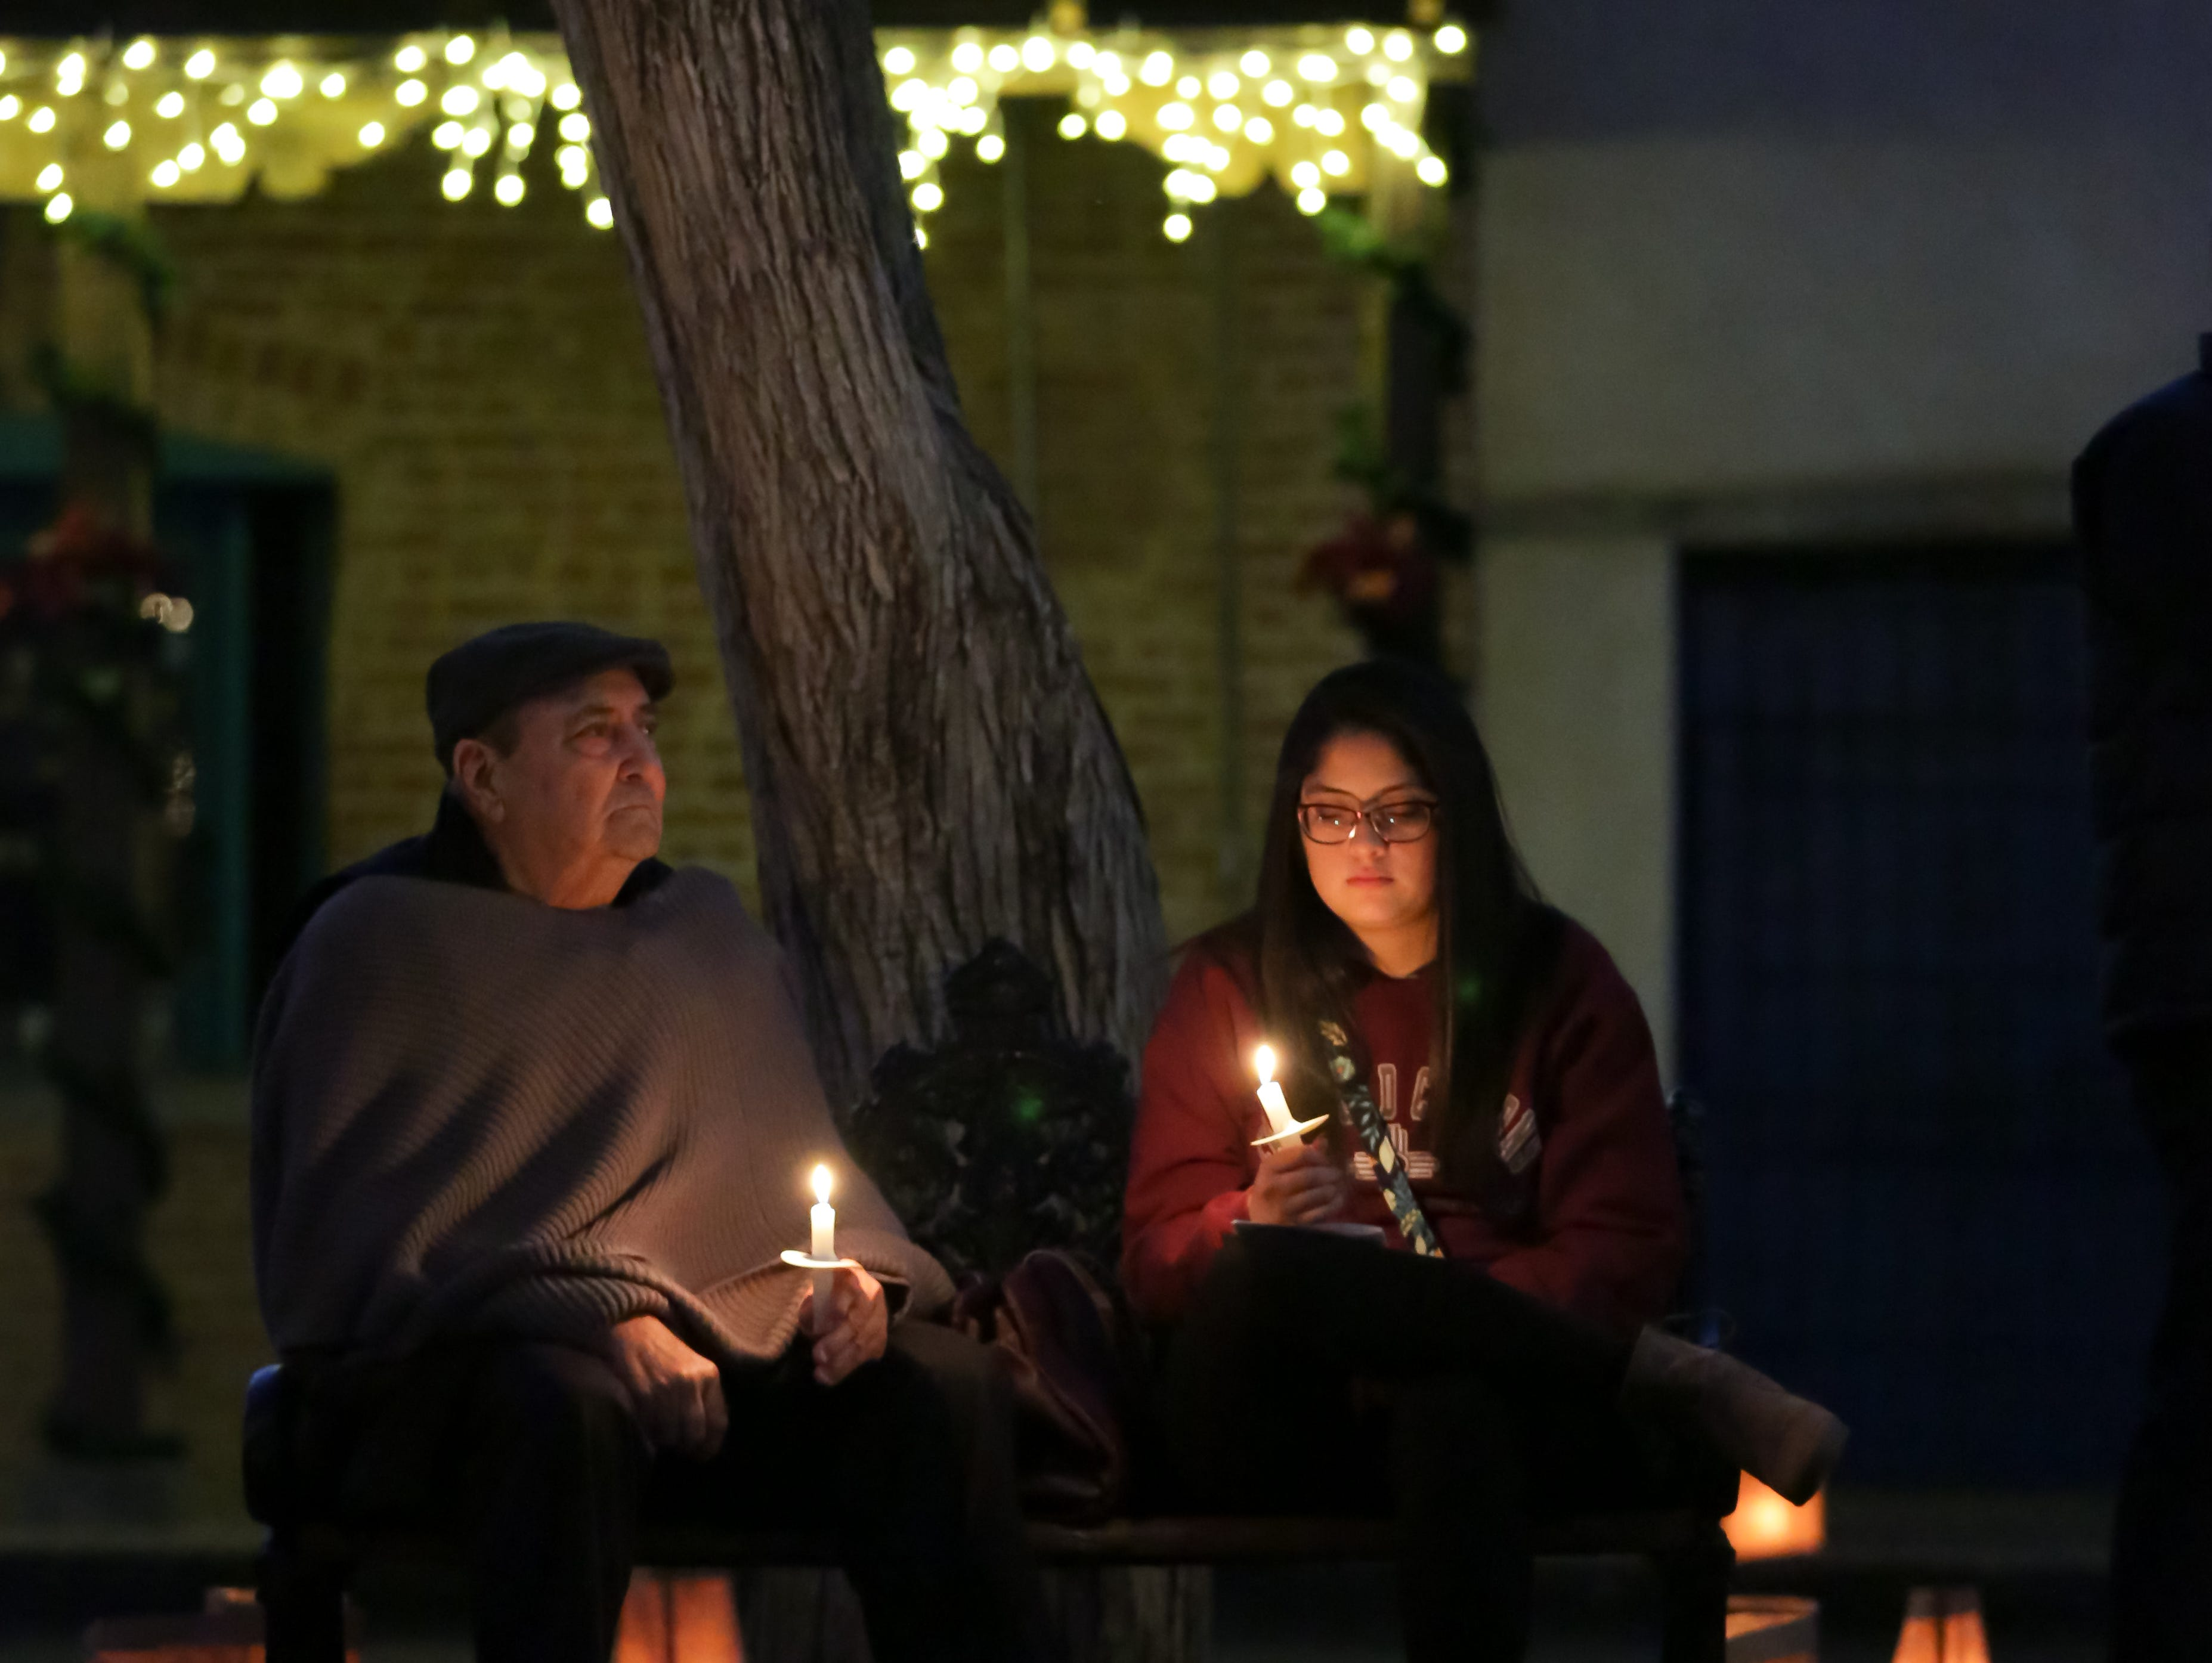 Ramon Martinez, and his granddaughter Sophia Villegas check out the festivities at the Mesilla Plaza on Christmas Eve, Monday, Dec. 24, 2018. There were 6,000 luminarias lit by the historic village of Old Mesilla.